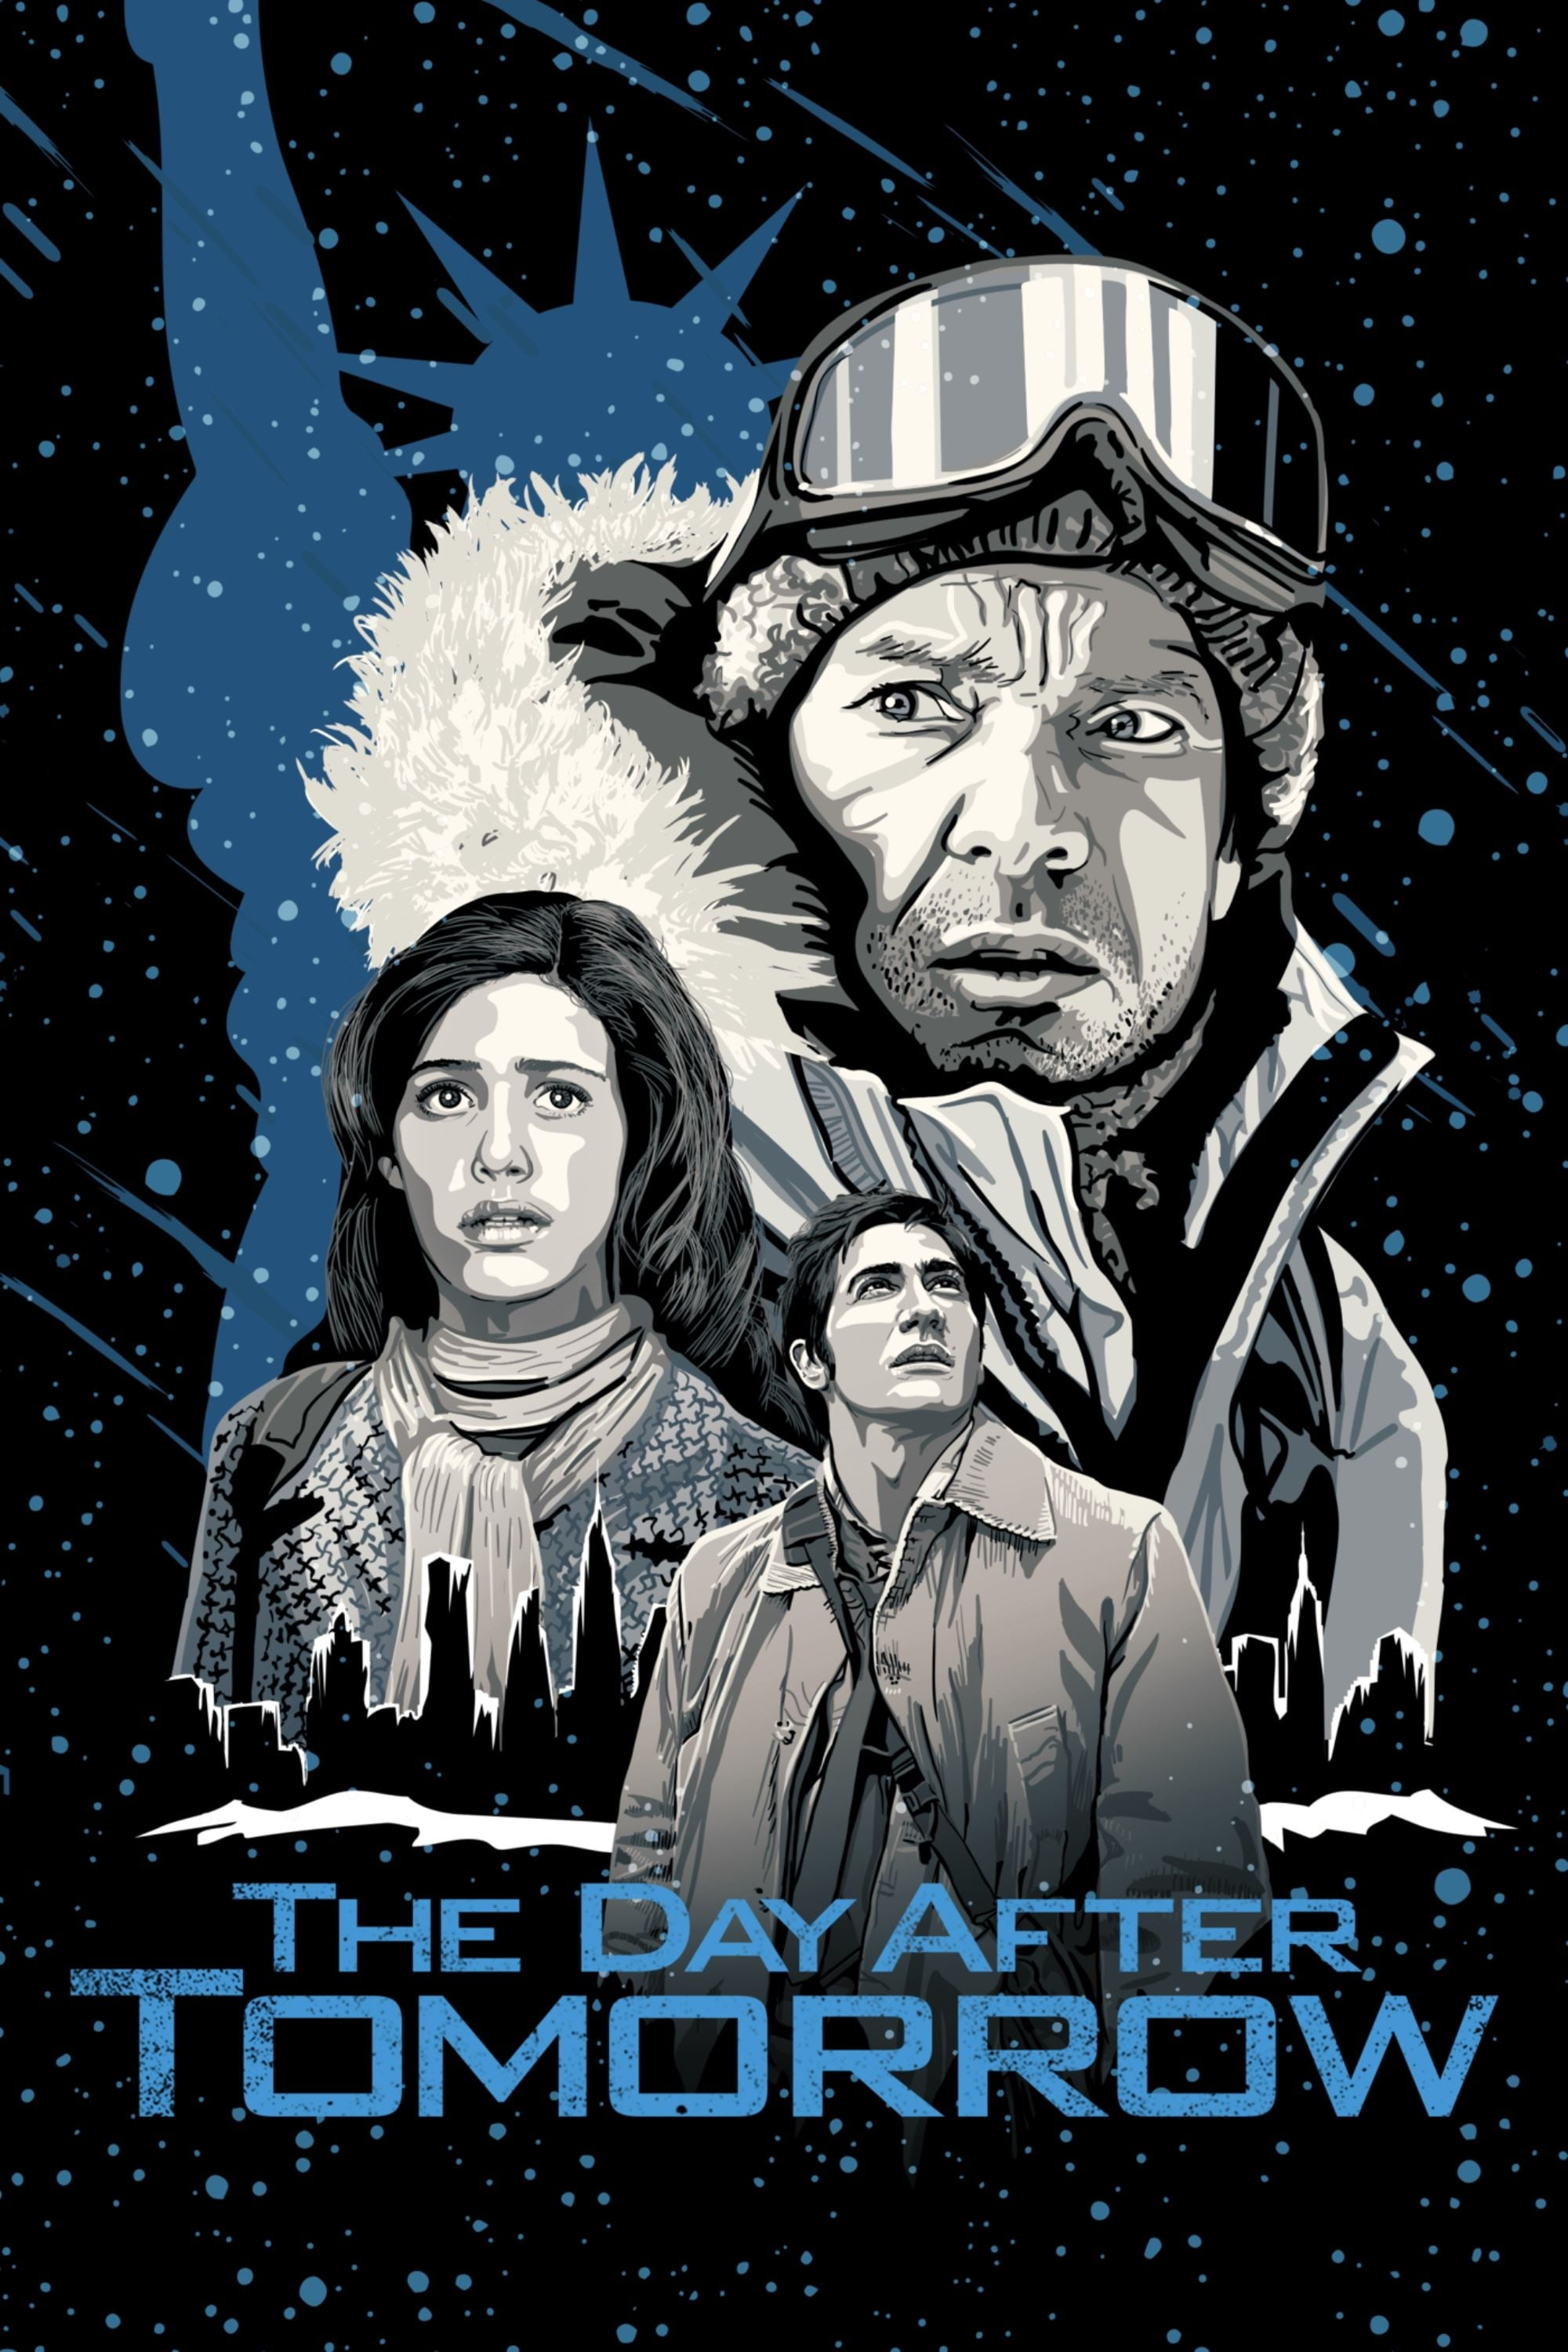 The Movie The Day After: The Day After Tomorrow (2004)